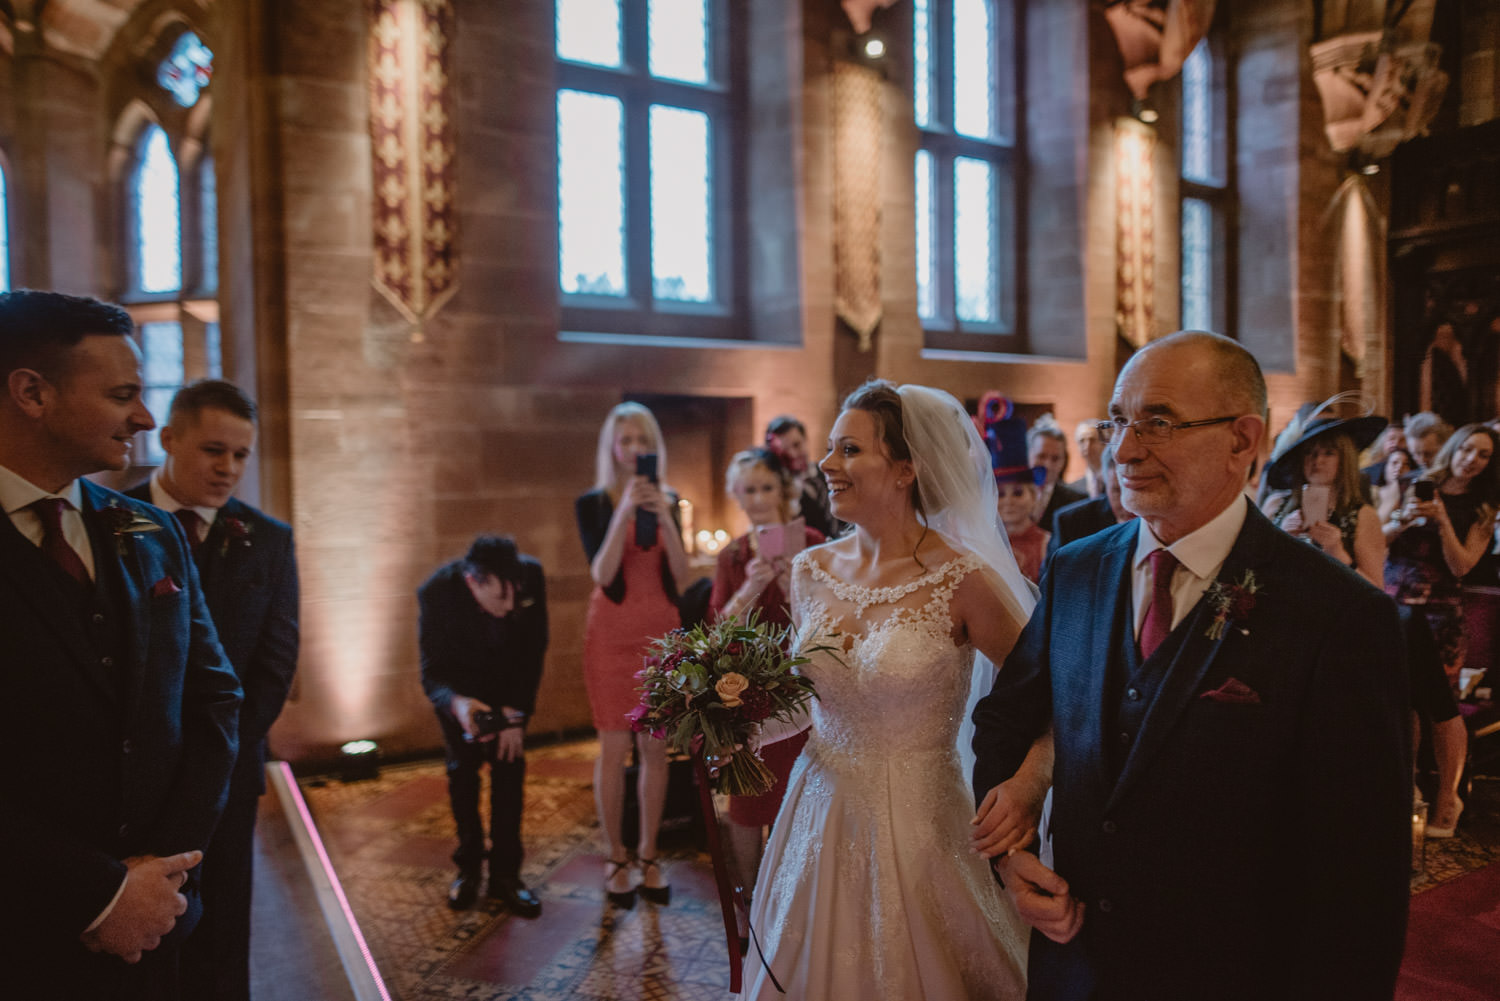 Bride sees her groom for the first time on their wedding day at Peckforton Castle